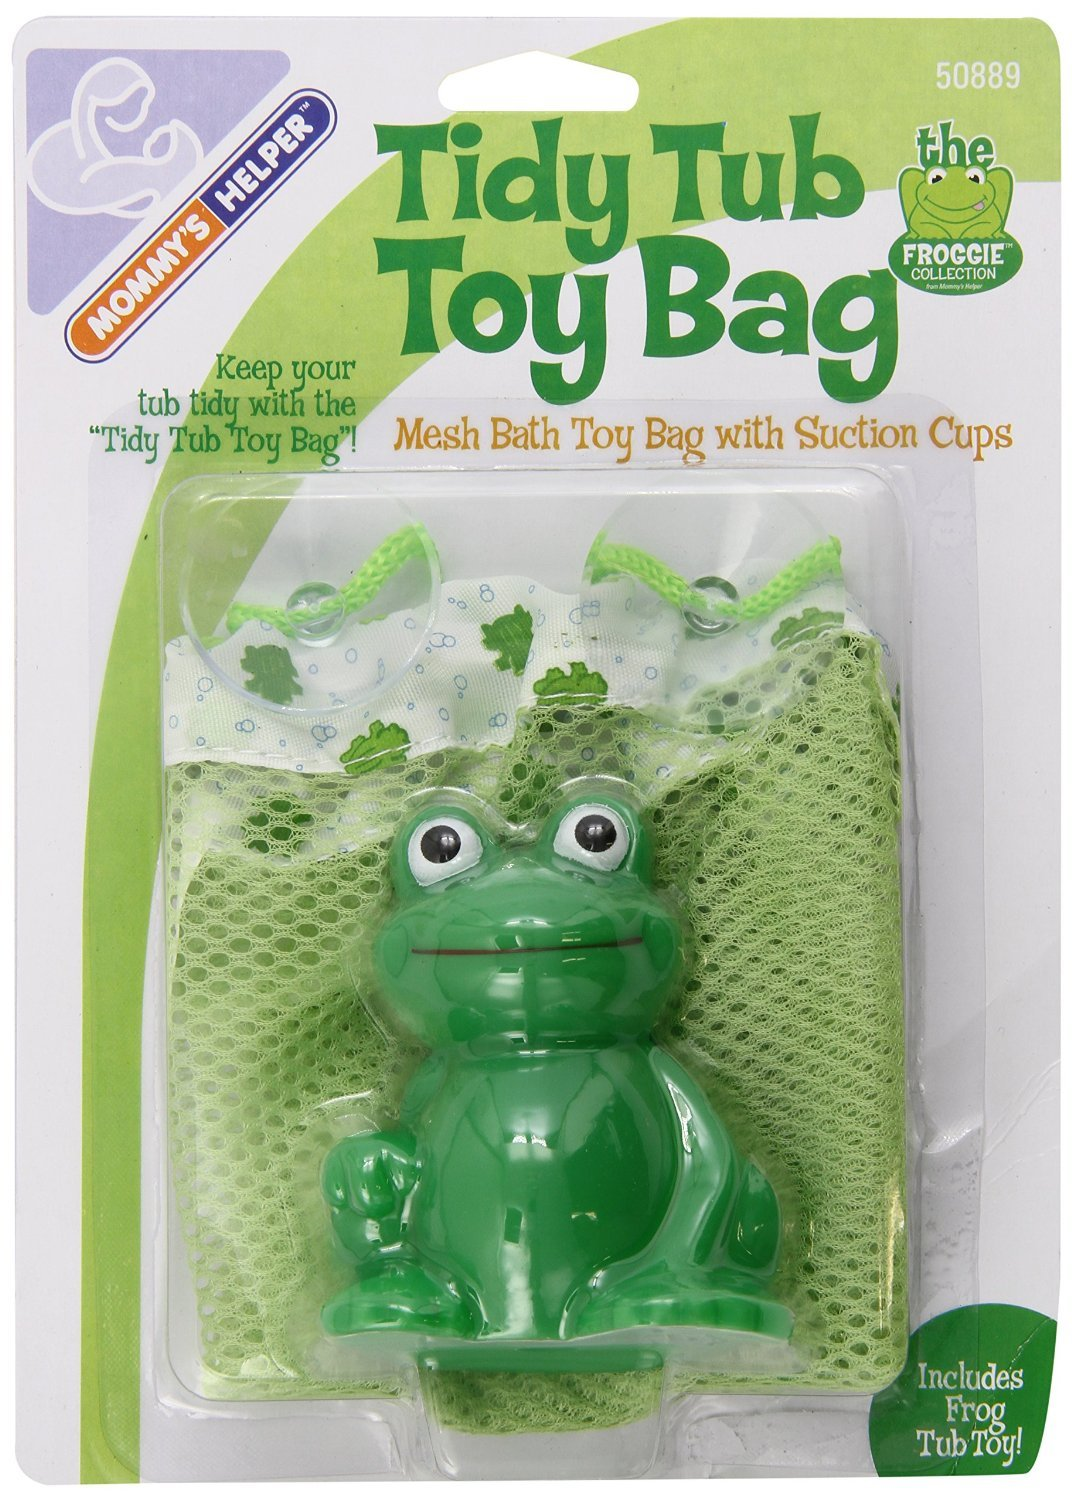 Amazon.com : Mommys Helper Tidy Tub Toy Bag : Bathtub Toy Bags : Baby